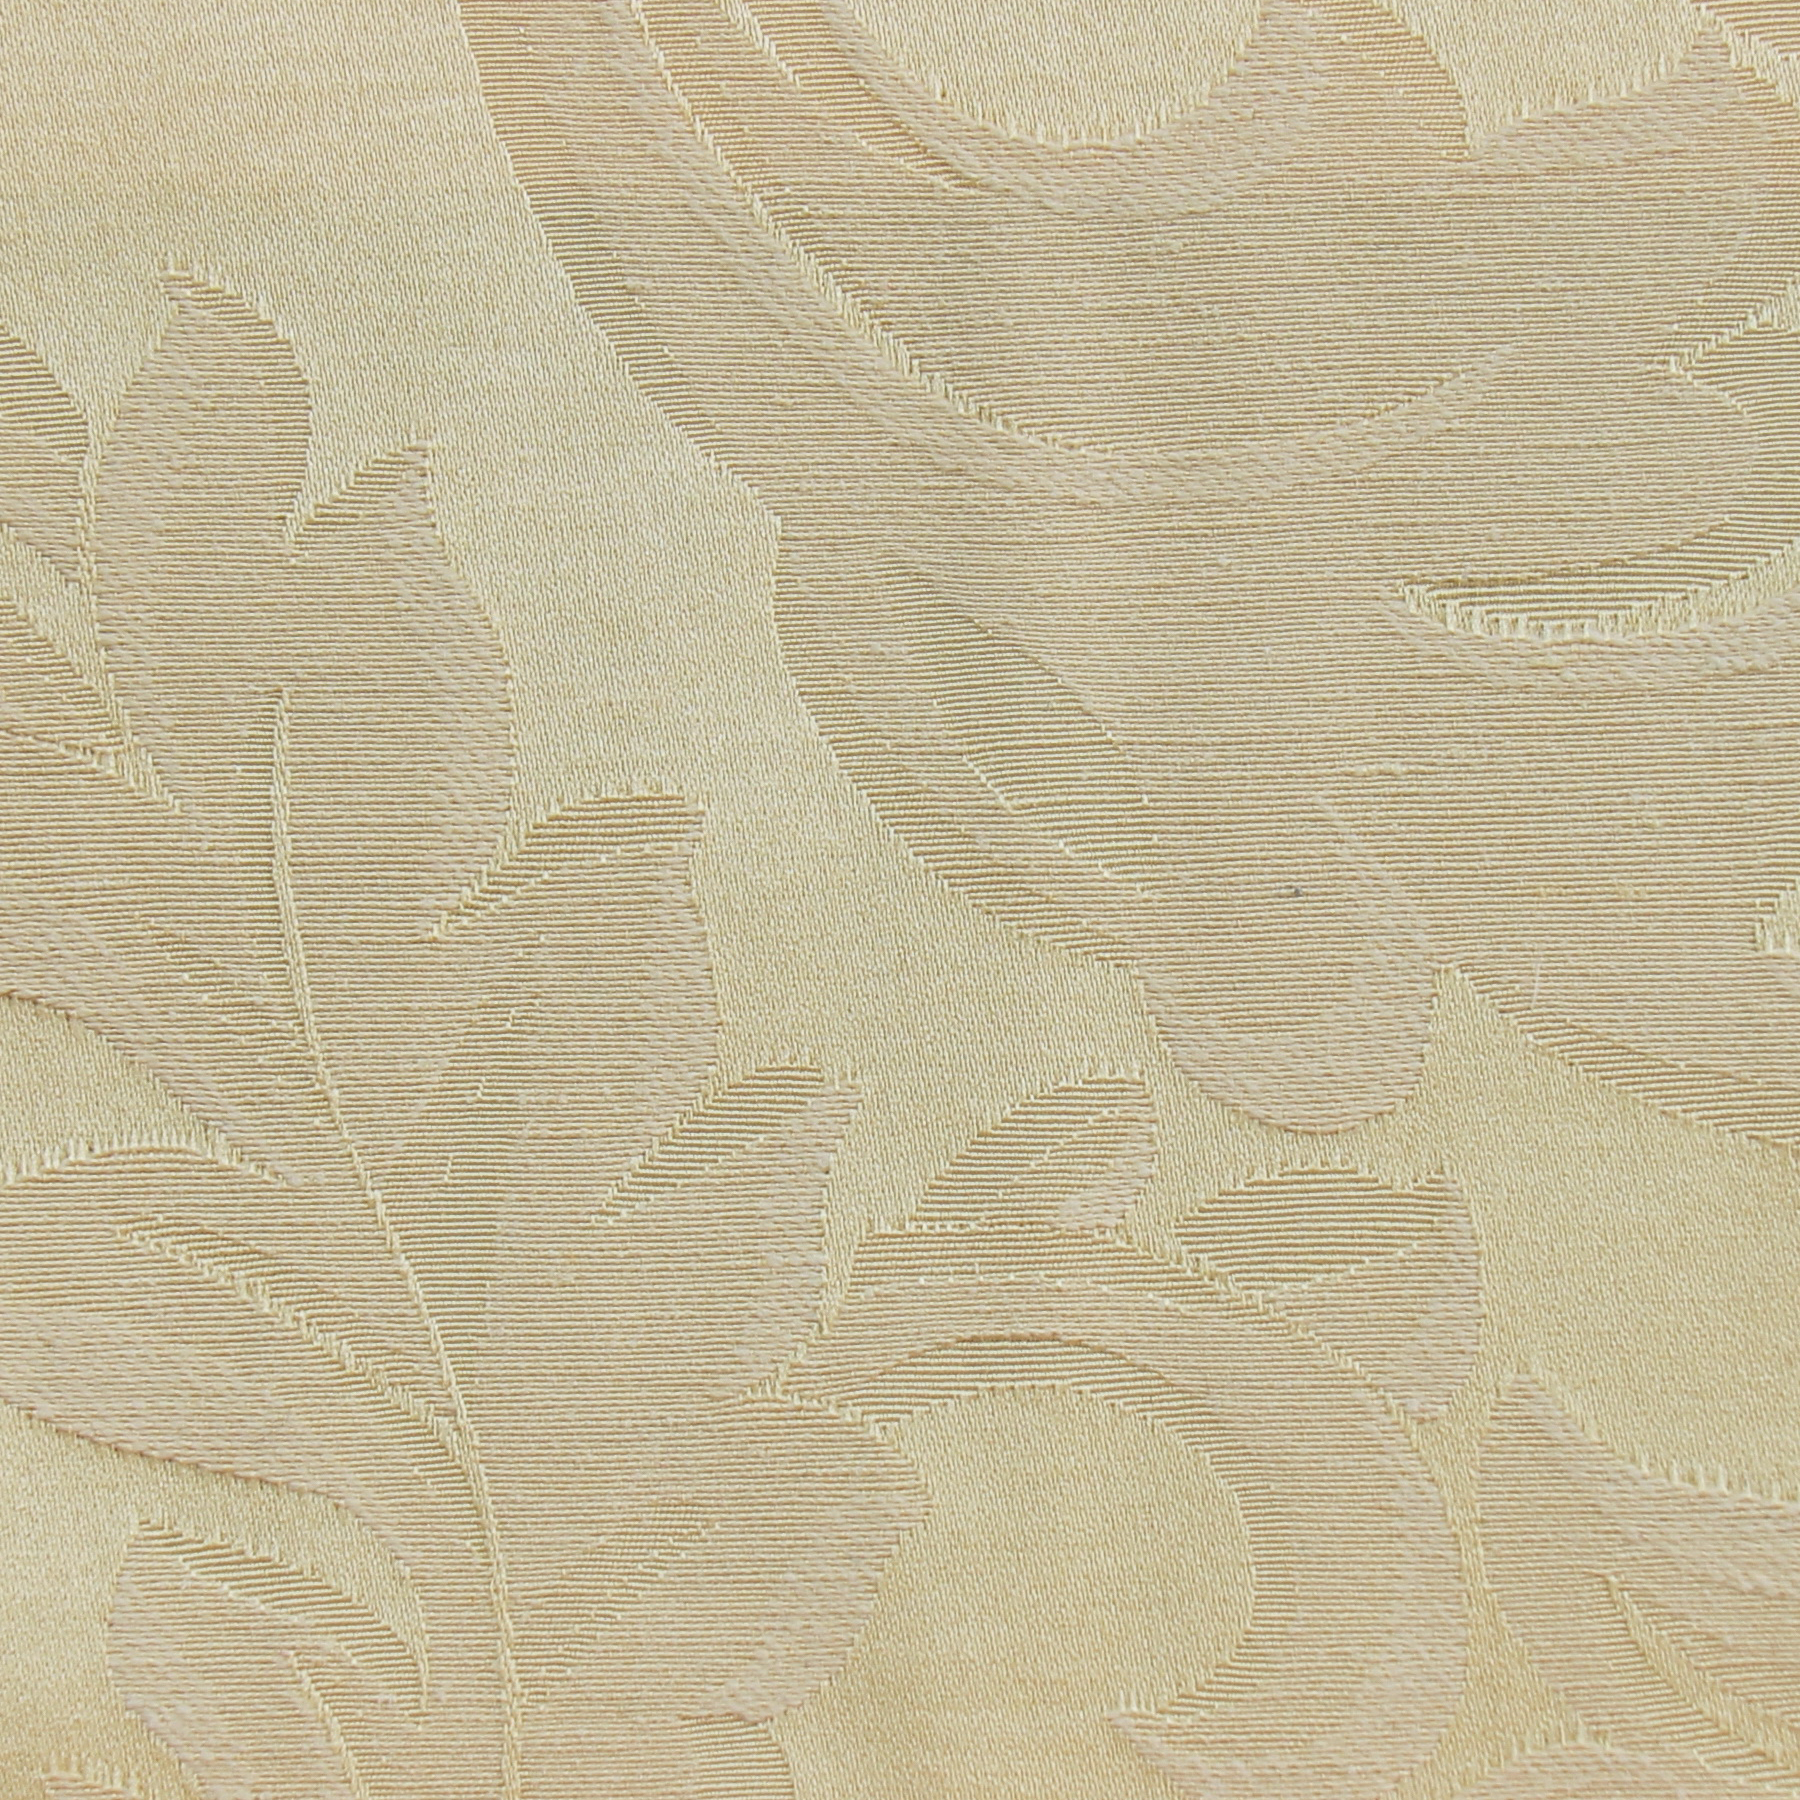 NO 35-45 RS X1 NO 34 Fabric Upholstery Sample